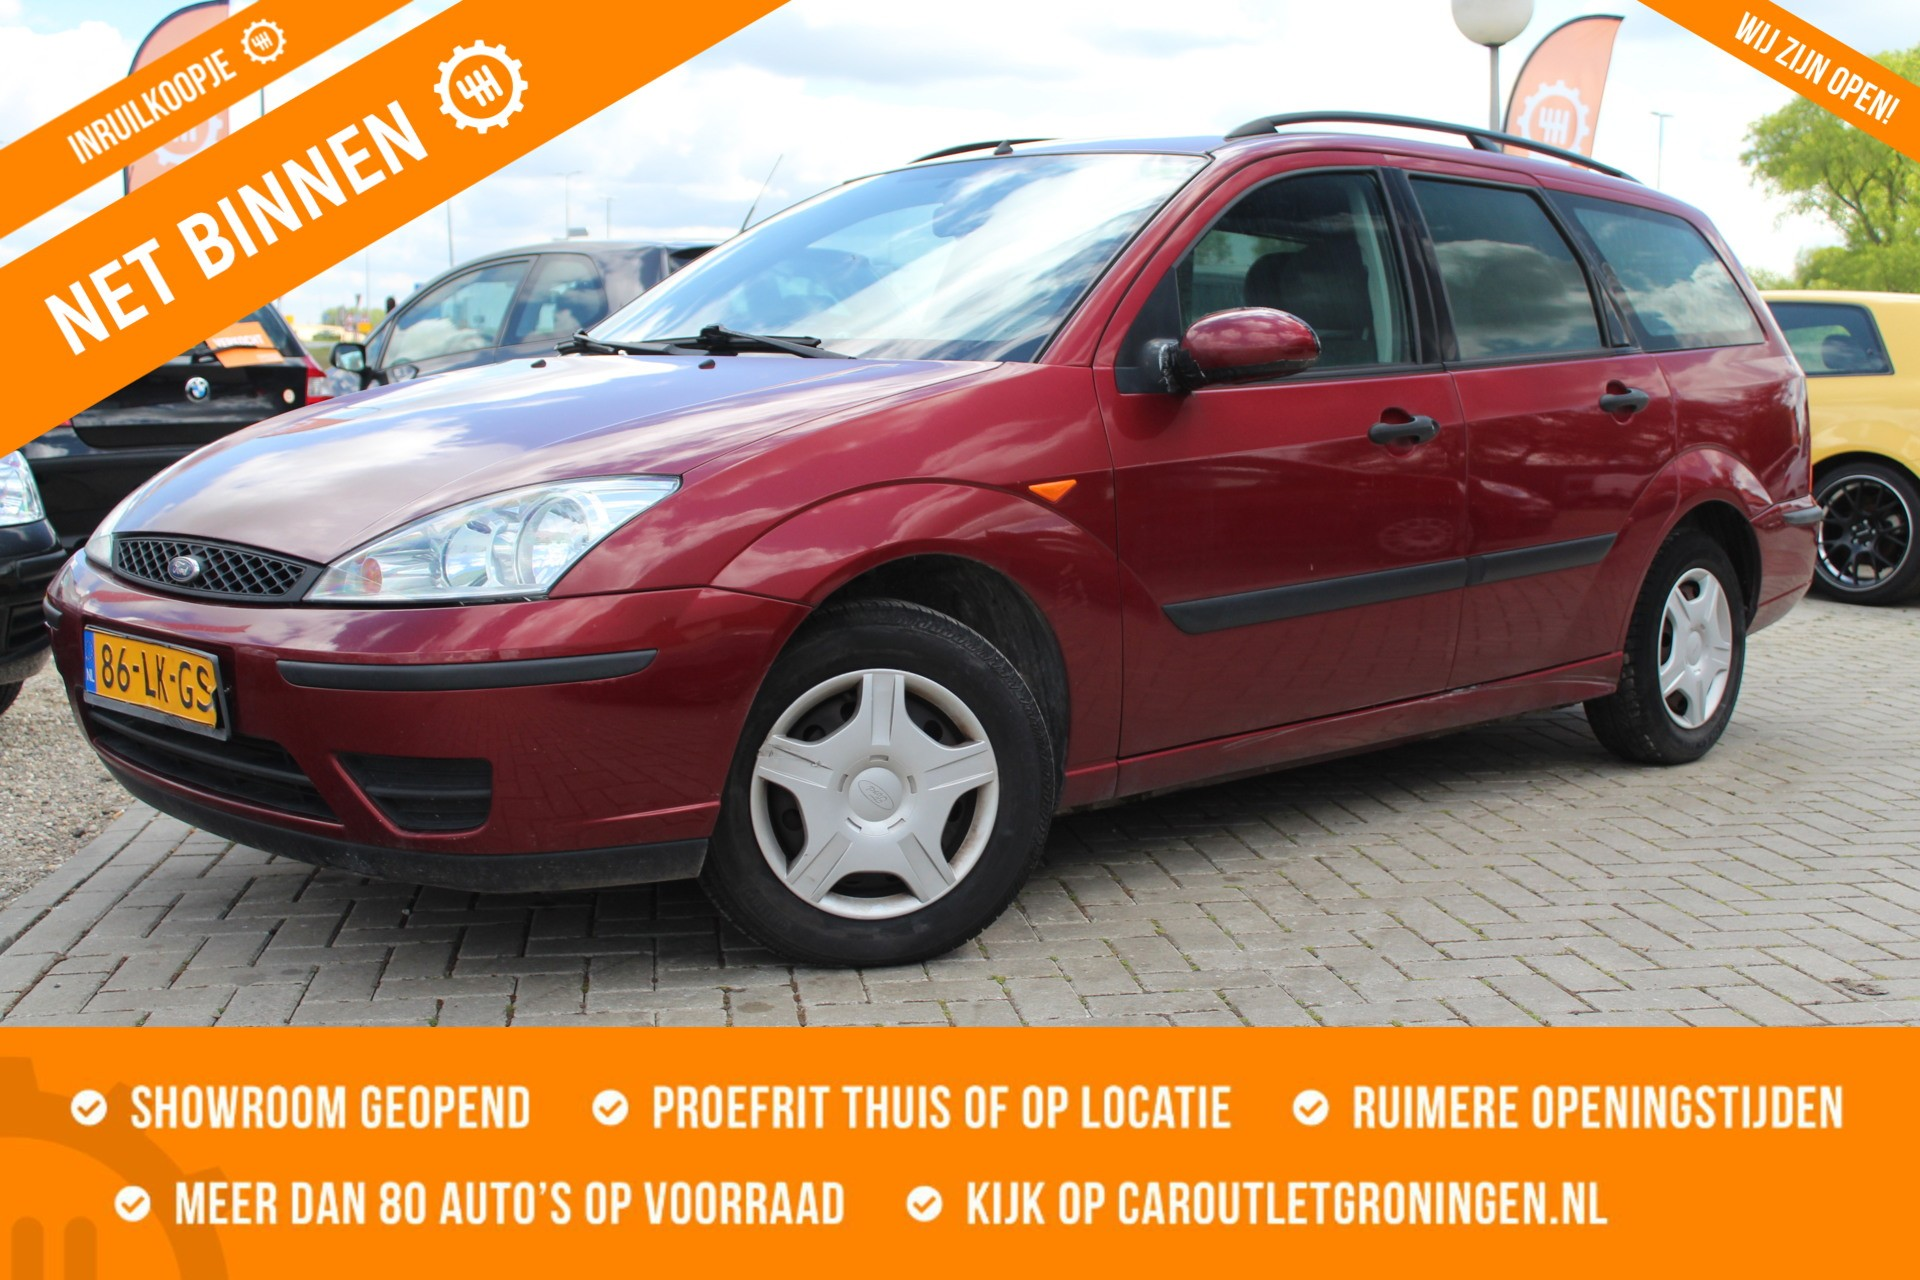 Ford Focus Wagon 1.6-16V Collection   INRUILKOOPJE   ZO MEENEMEN